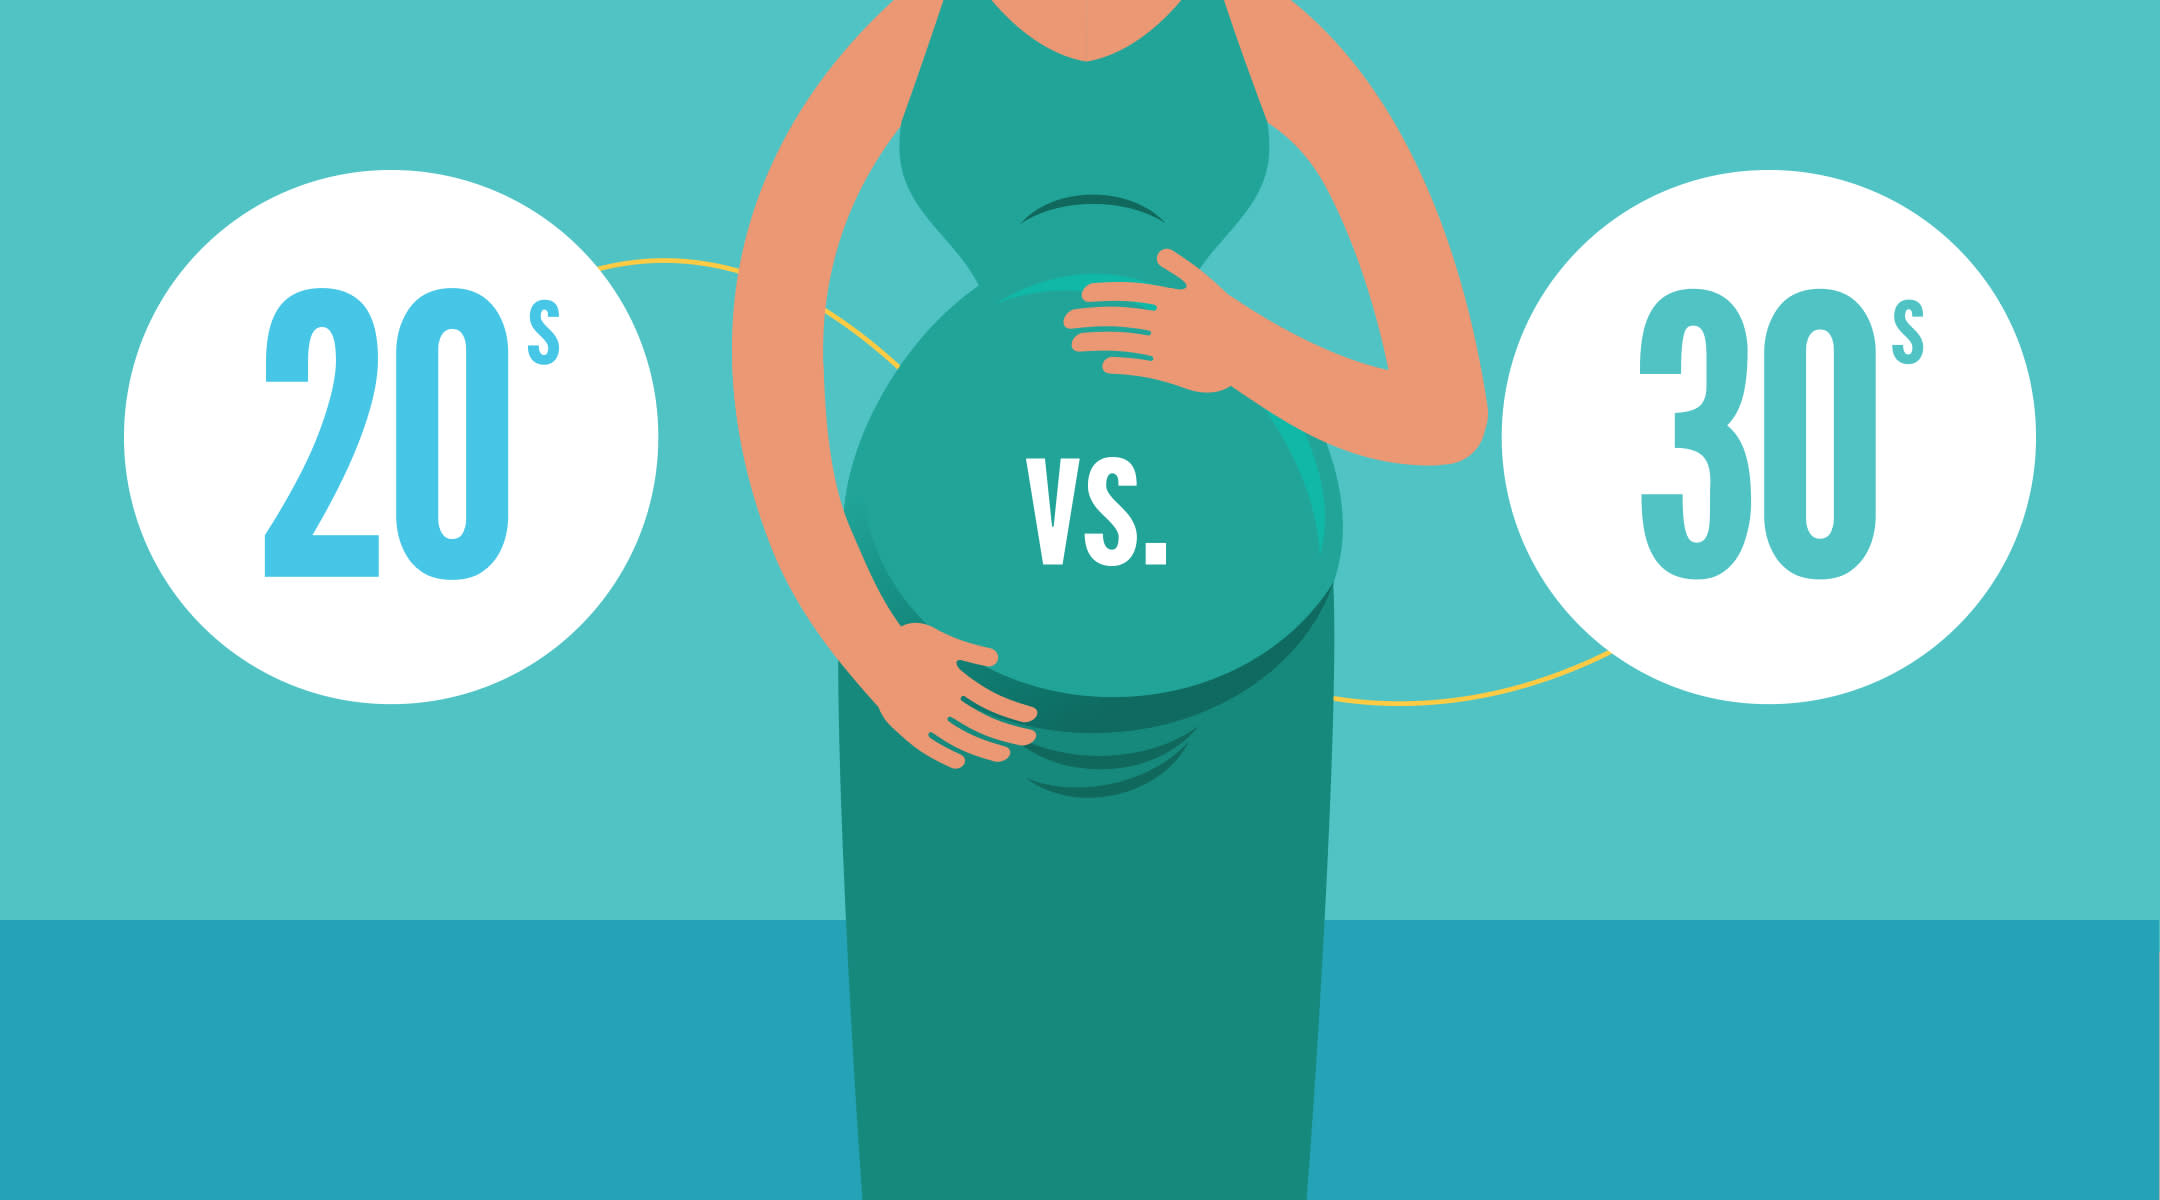 Getting-Pregnant-in-20s-vs-30s